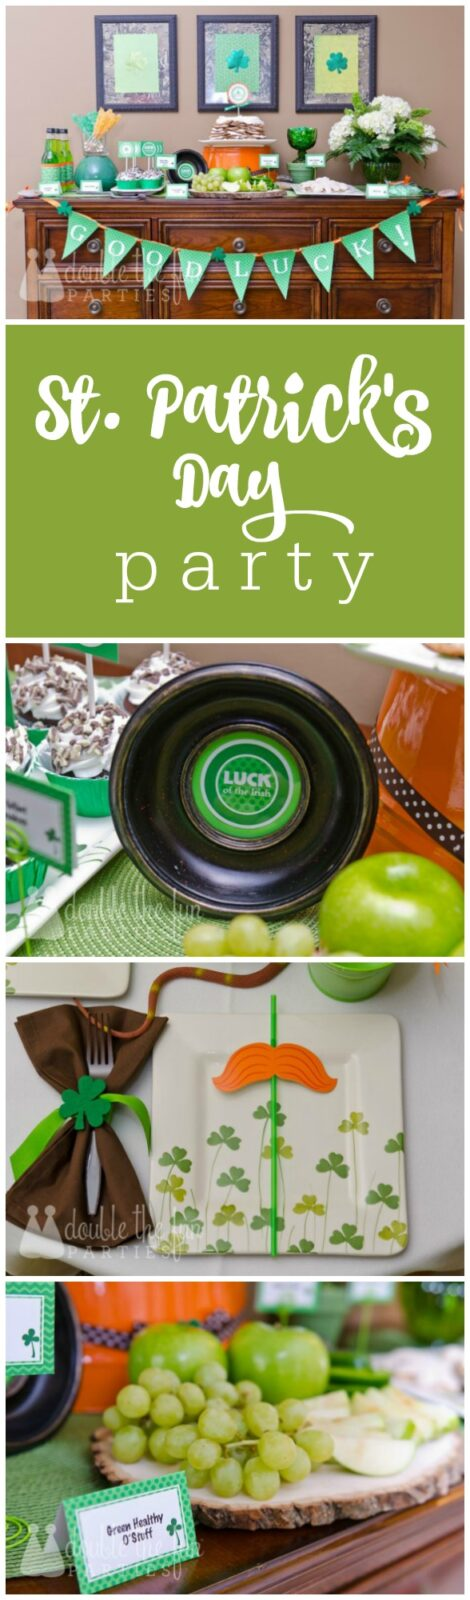 St Patricks Day Party by The Party Teacher